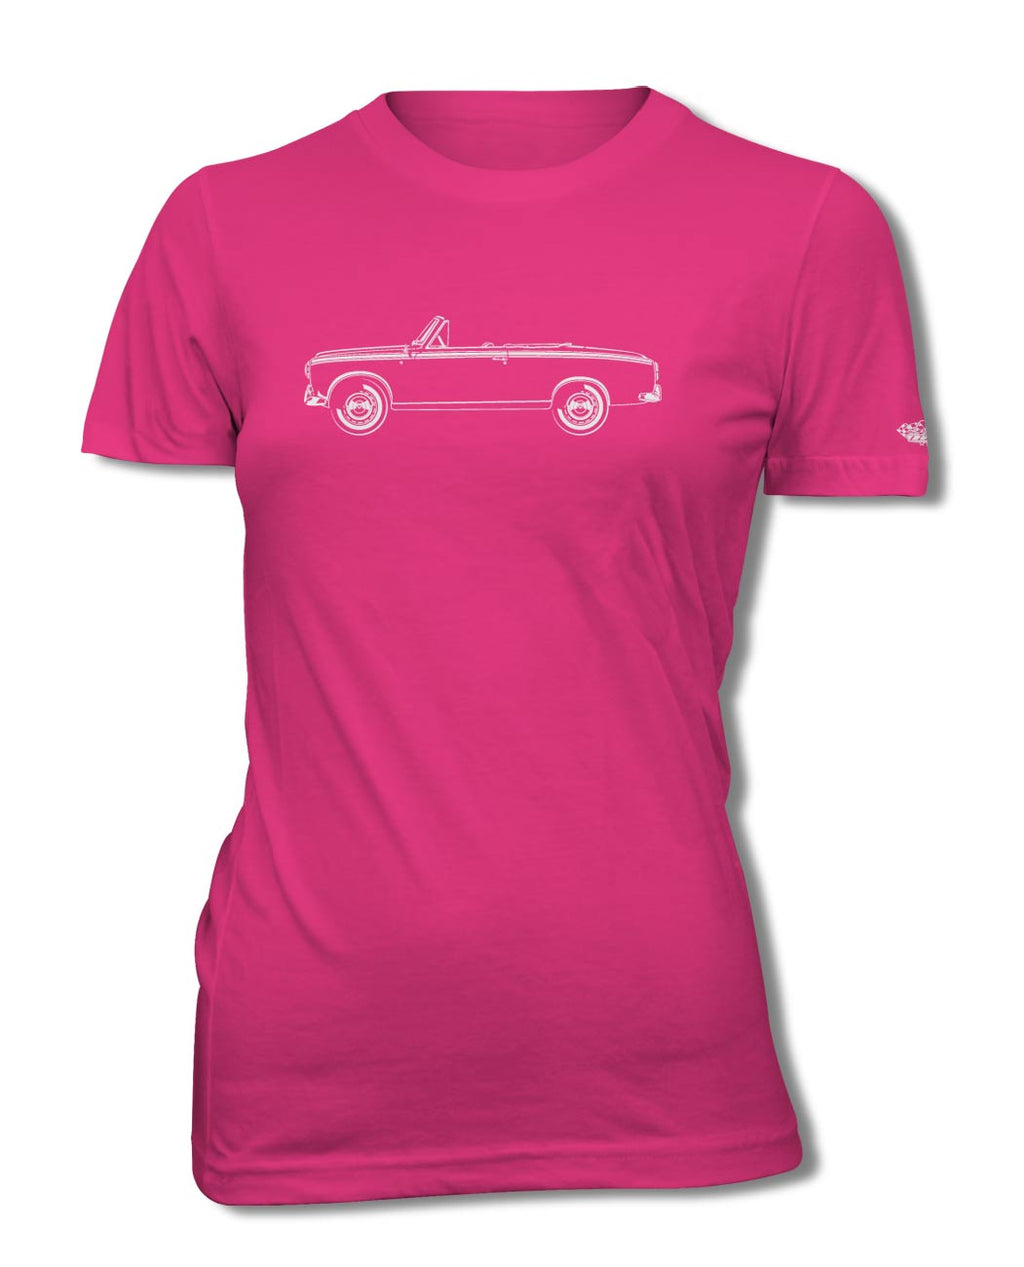 Peugeot 403 Convertible Cabriolet T-Shirt - Women - Side View